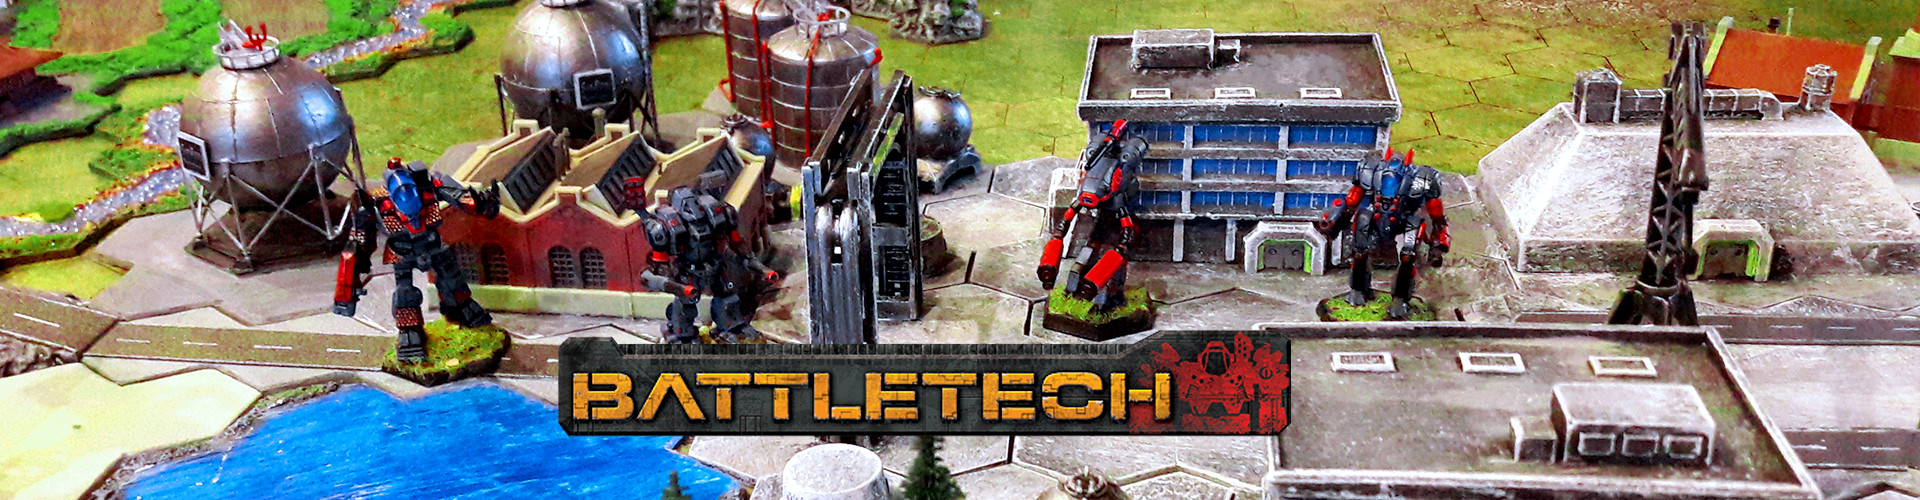 DEMO 06 Battletech - Demospiele: BATTLETECH